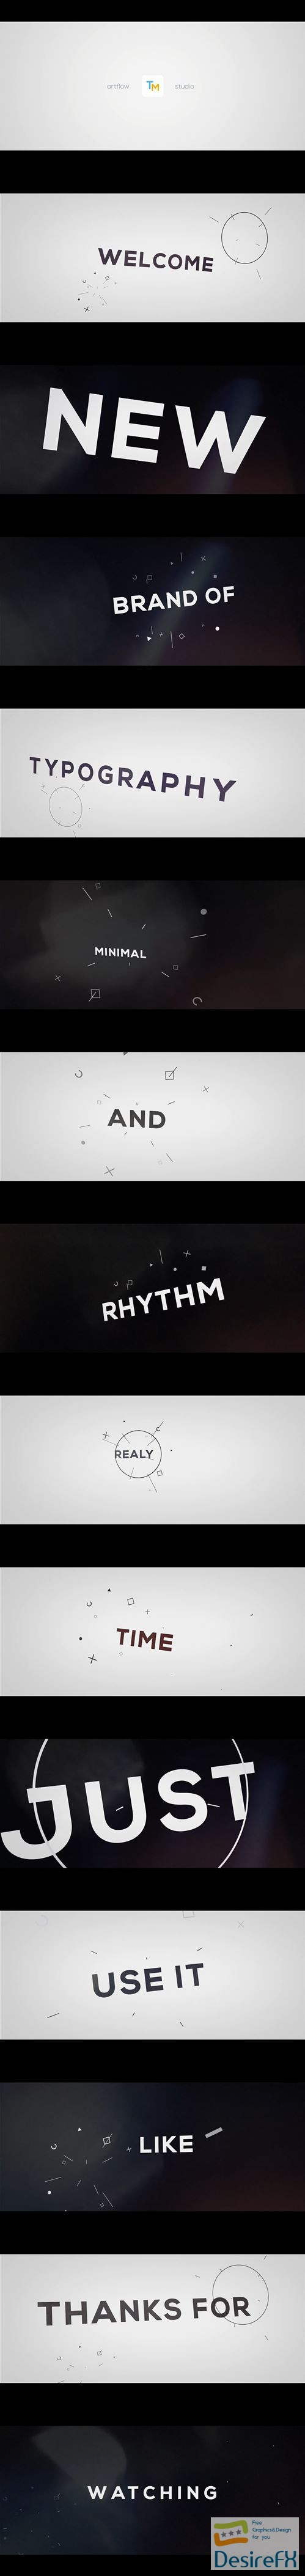 after-effects-projects - Videohive 3D Rhythm Typography Intro 20487522